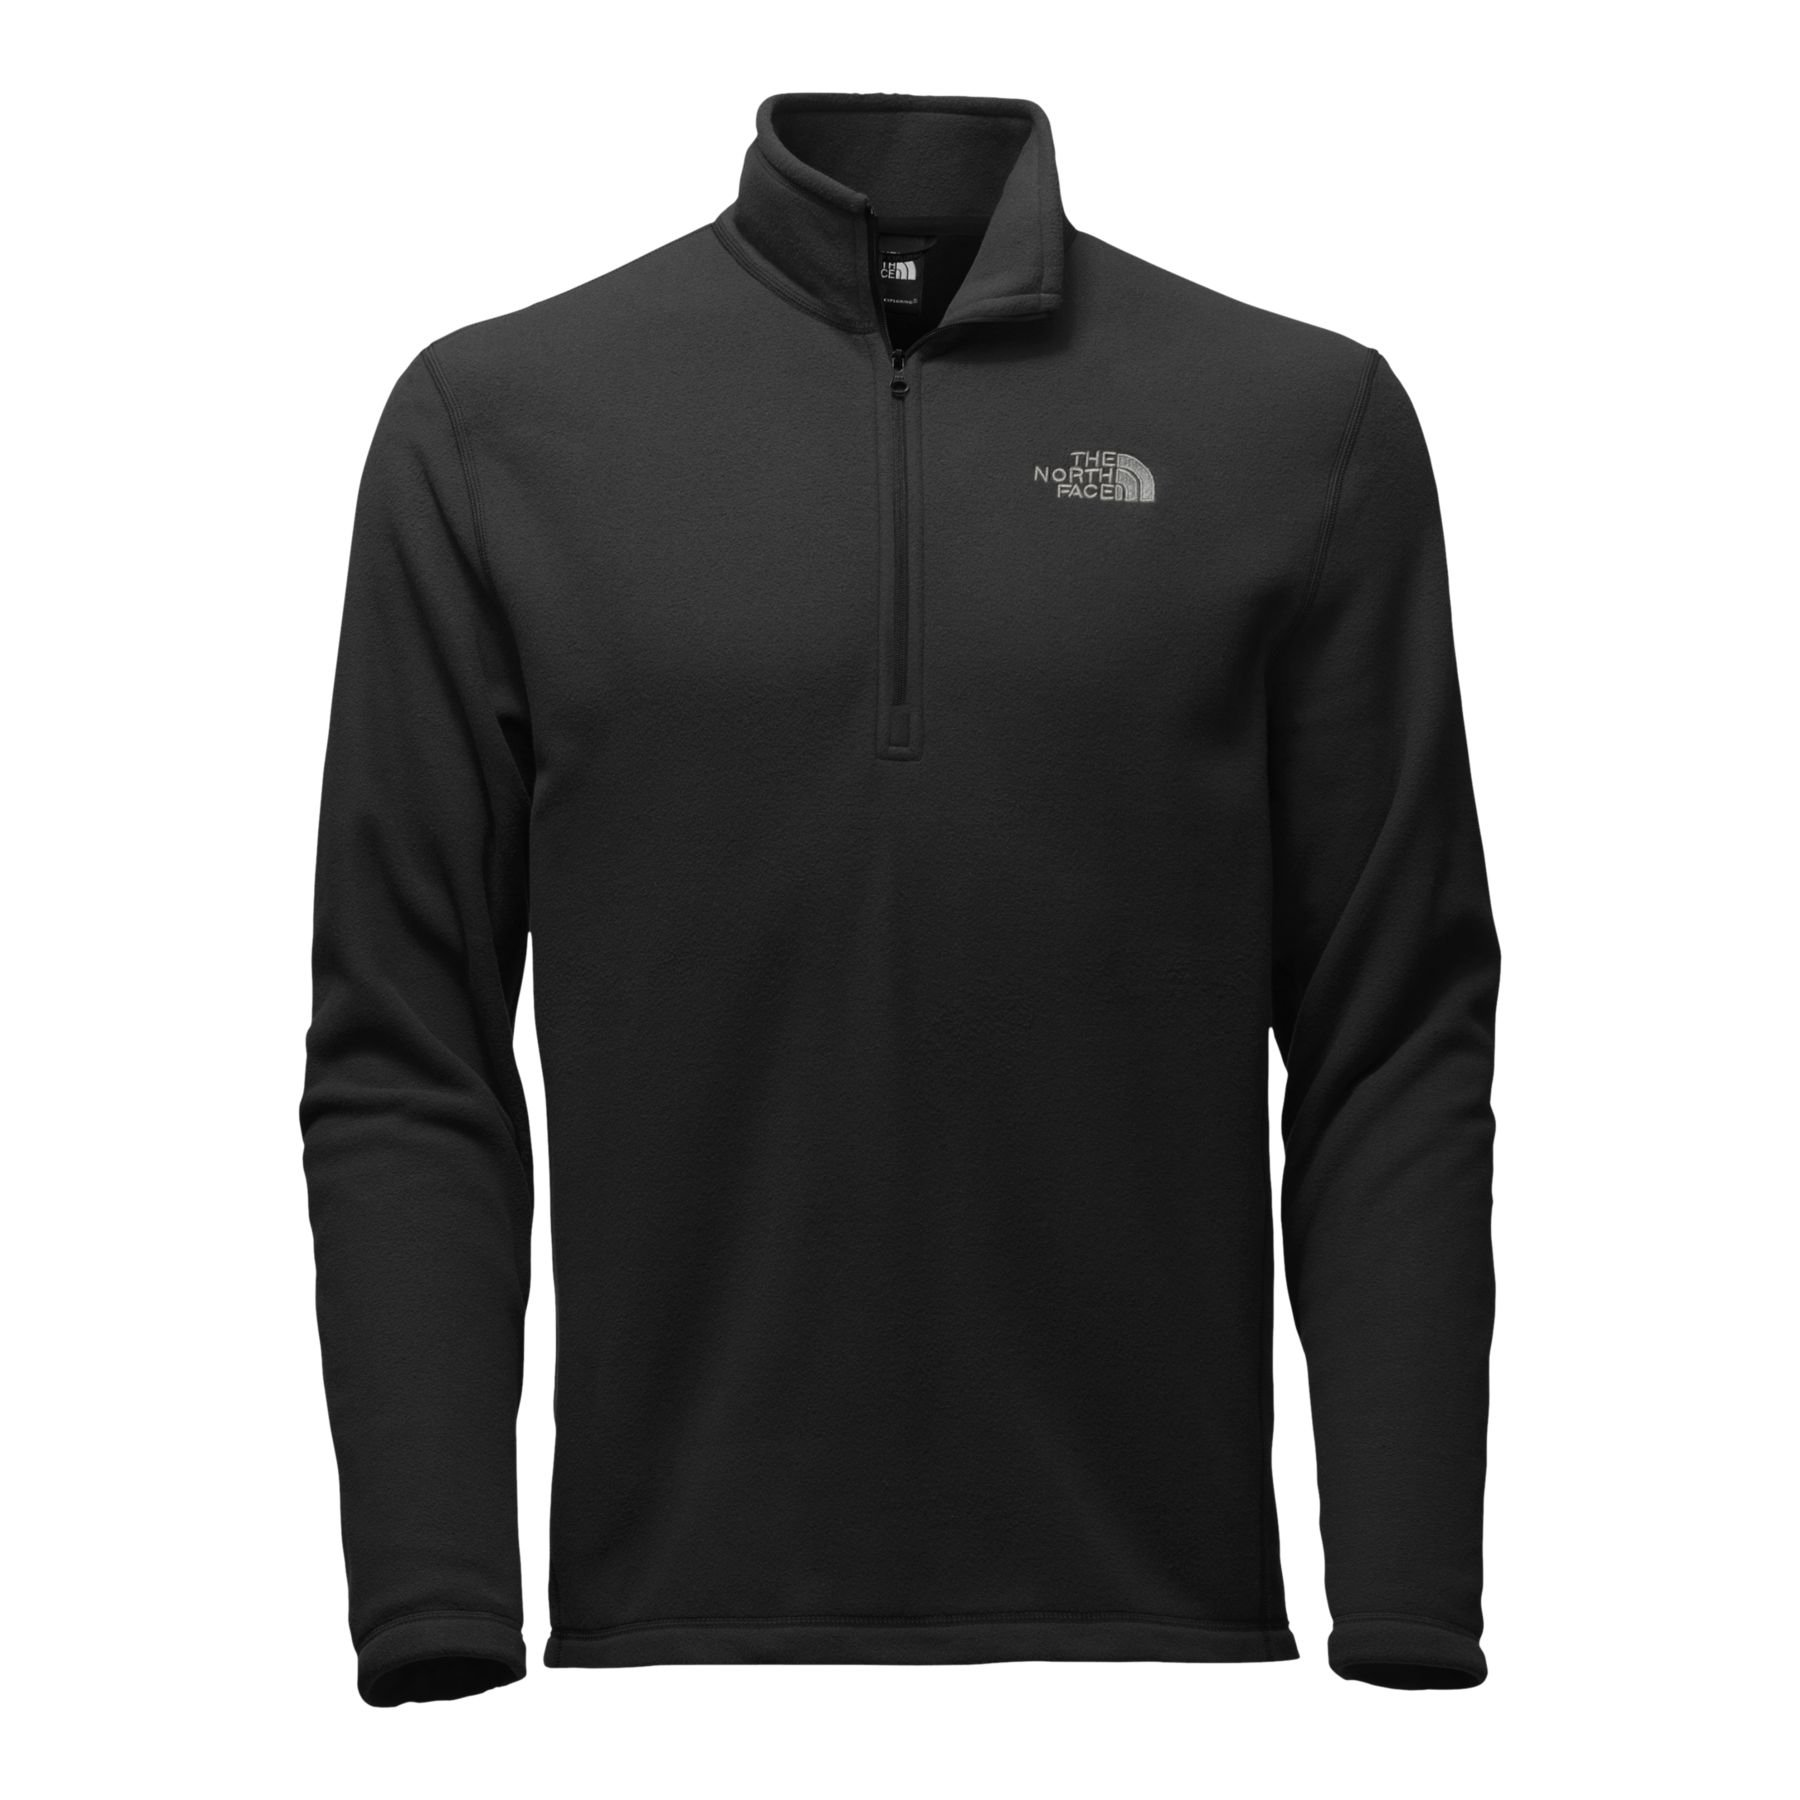 The North Face Men's TKA 100 Glacier 1/4 Zip TNF Black MD by The North Face